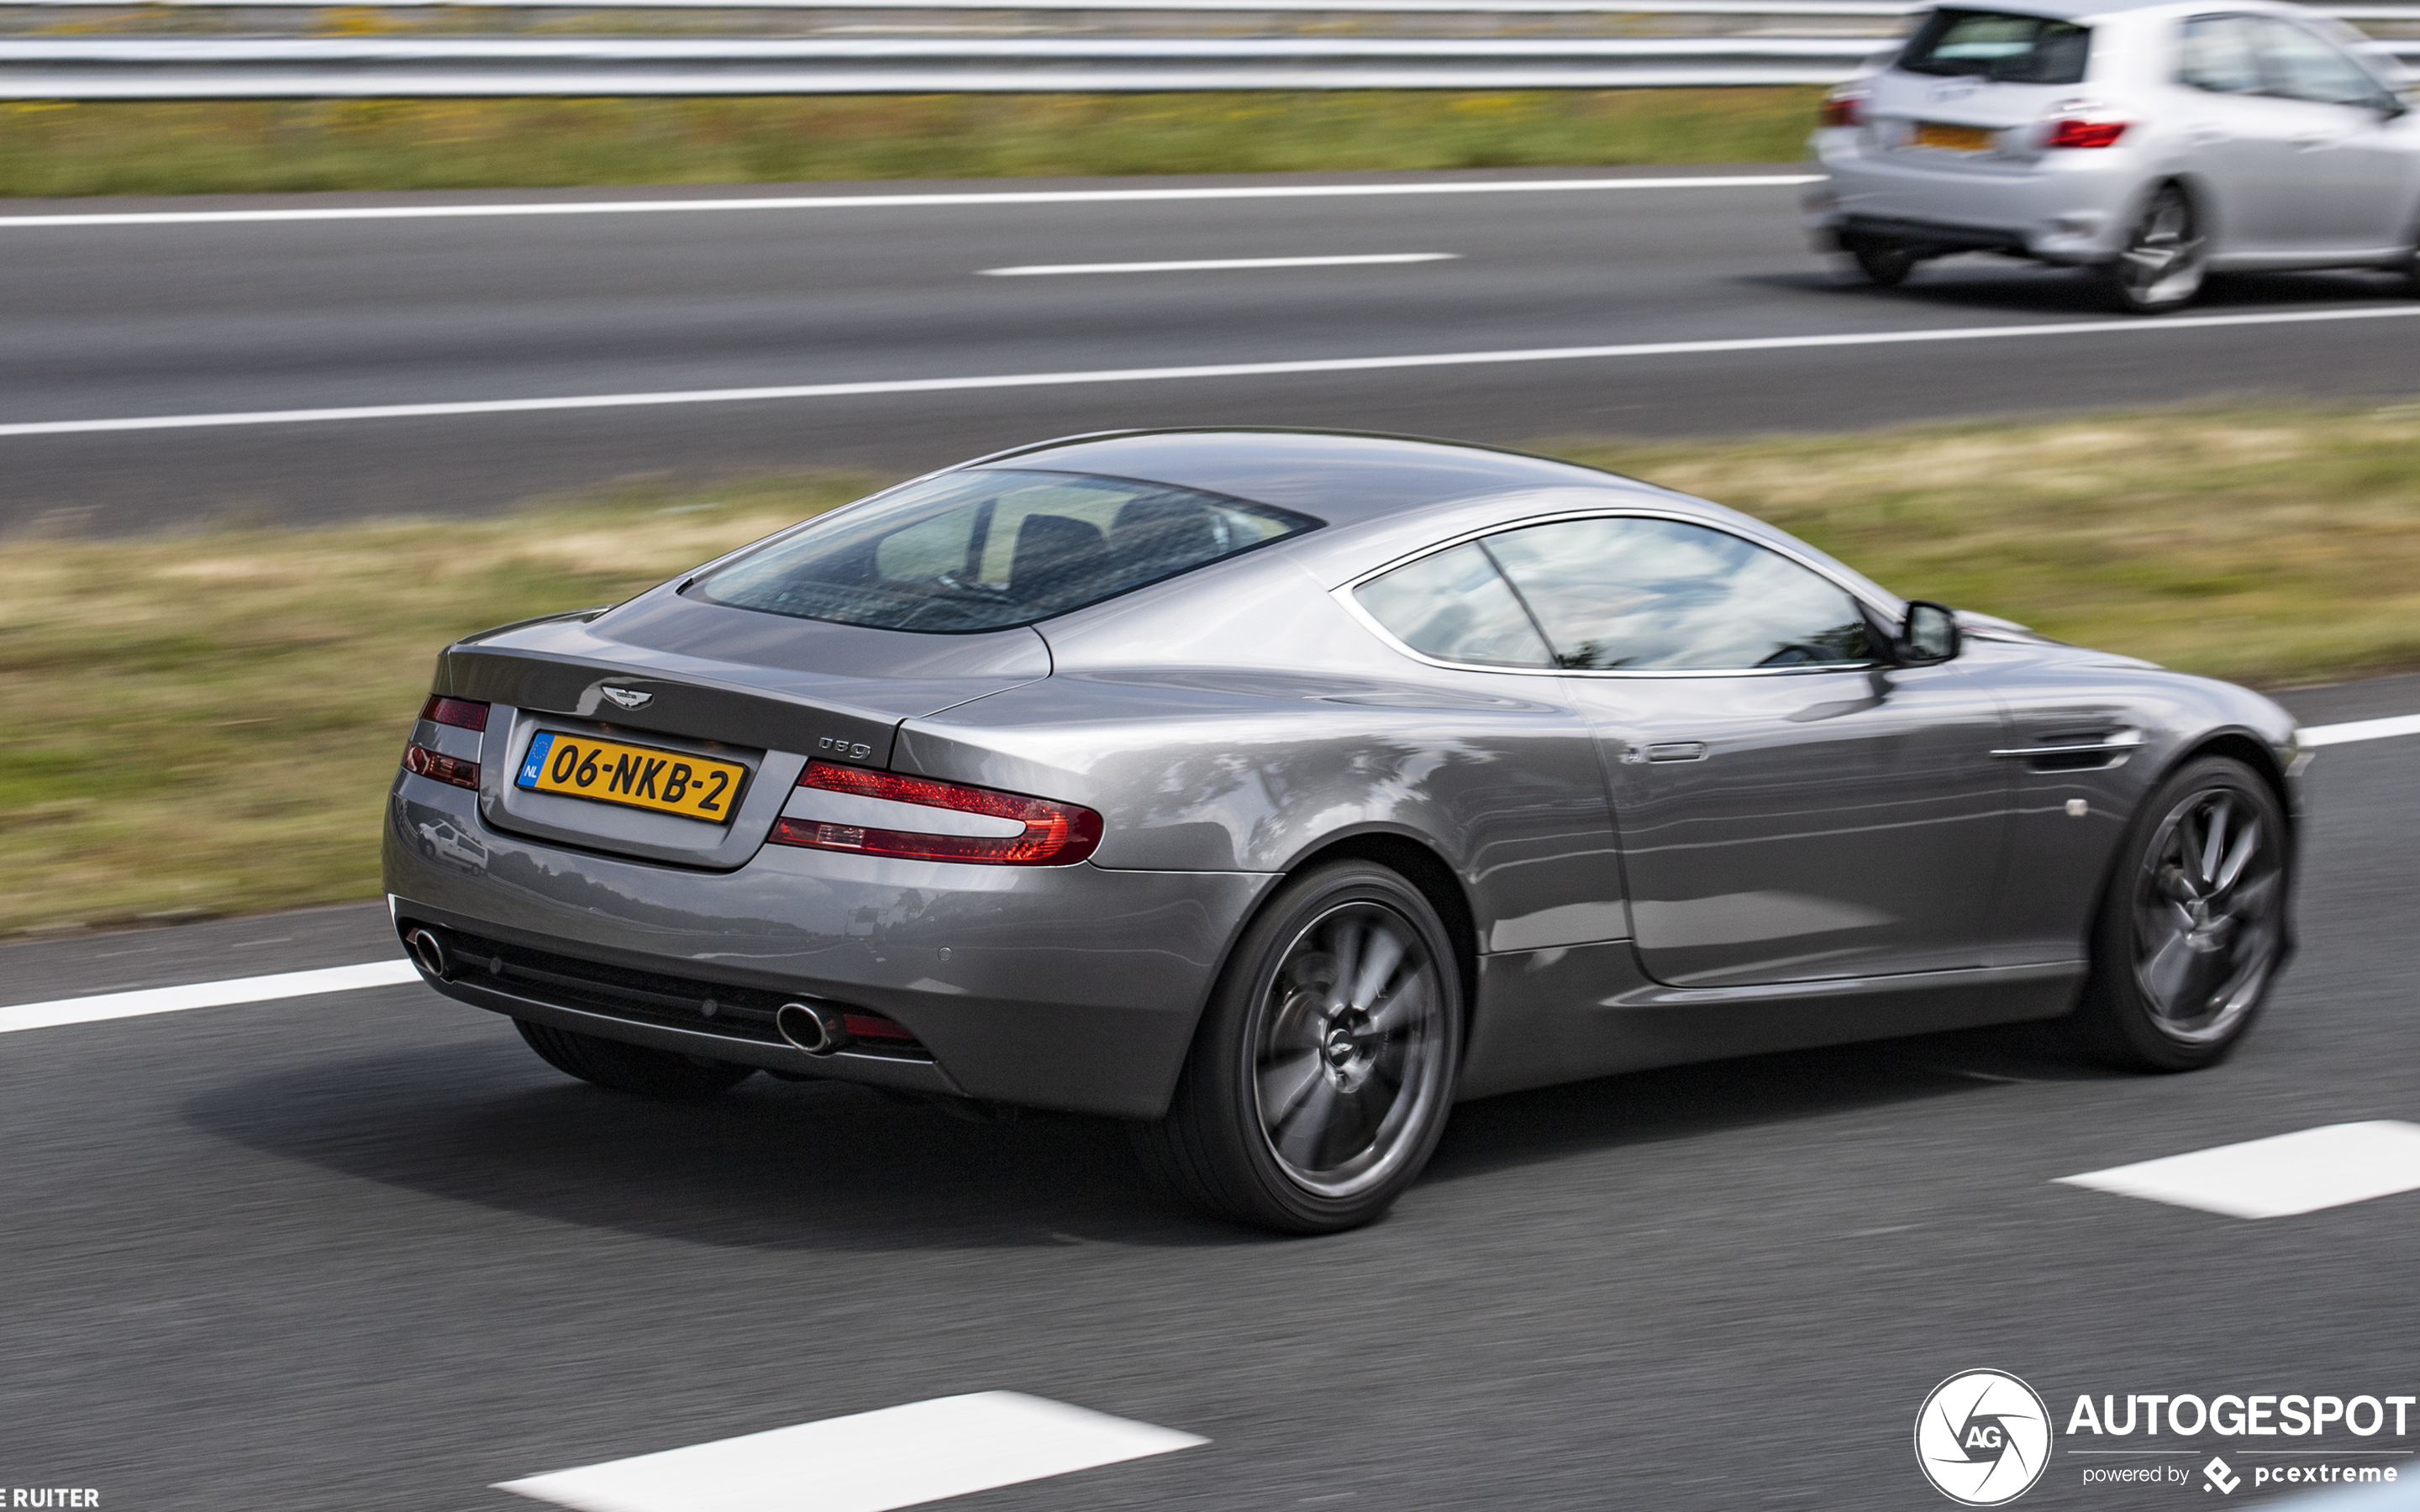 2020 Aston Martin DB9 Concept and Review